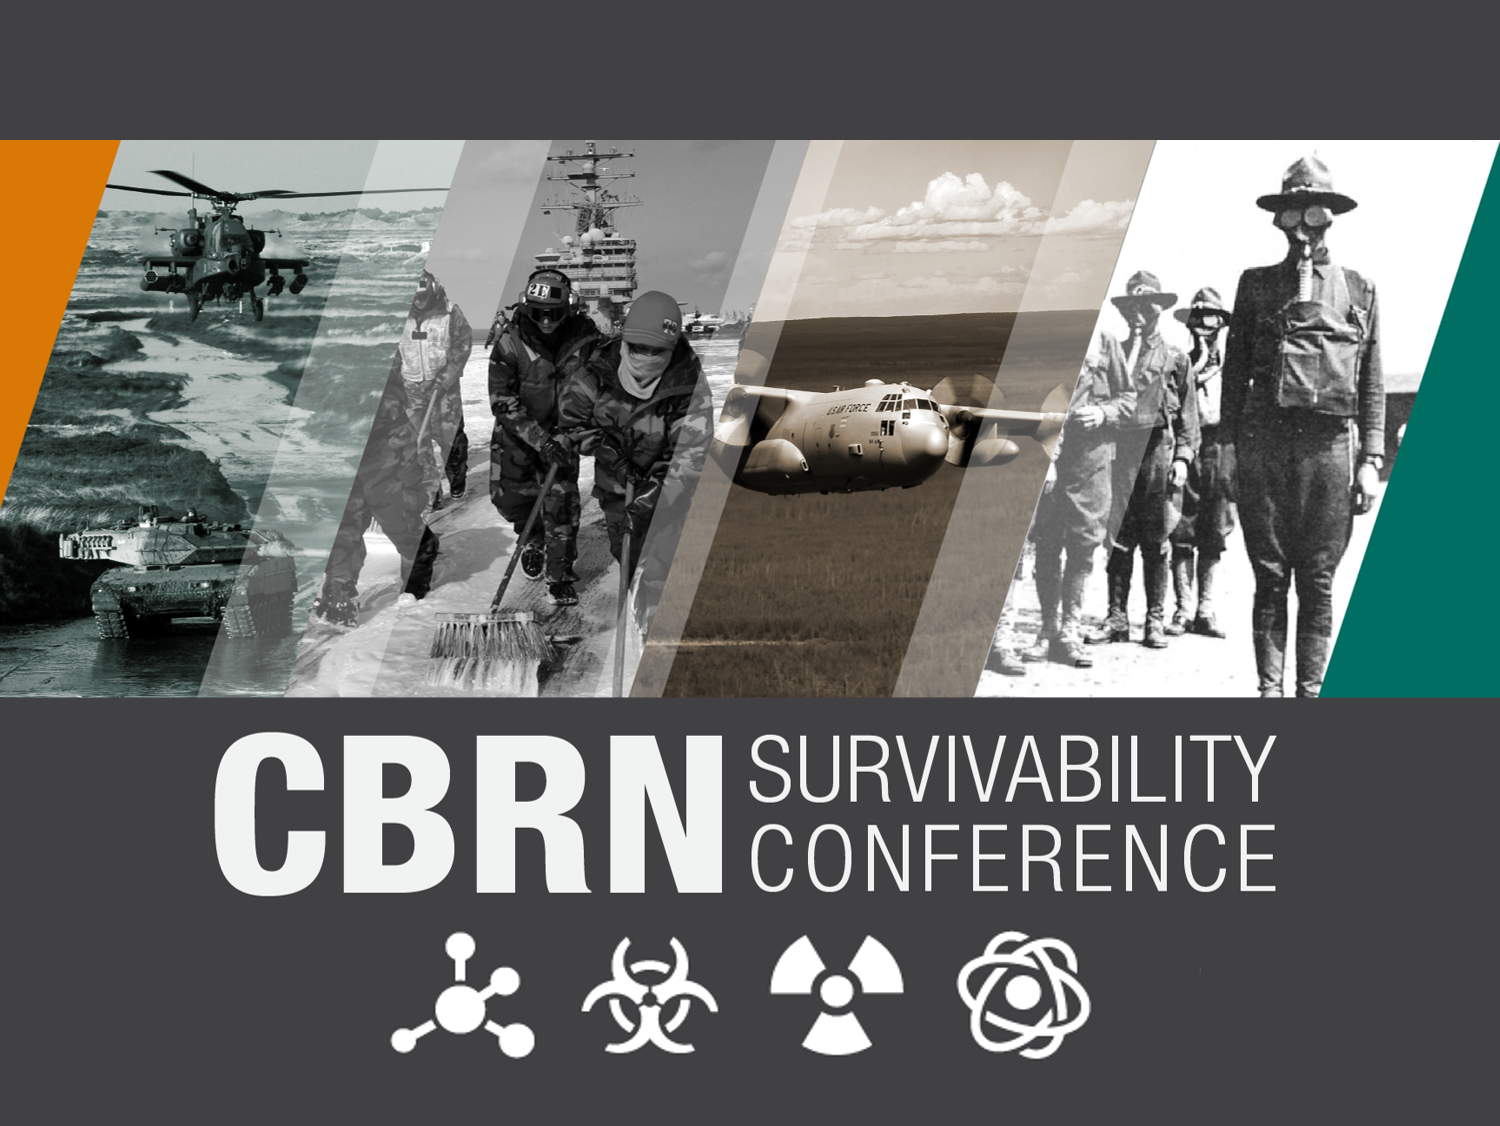 CBRN Survivability Conference